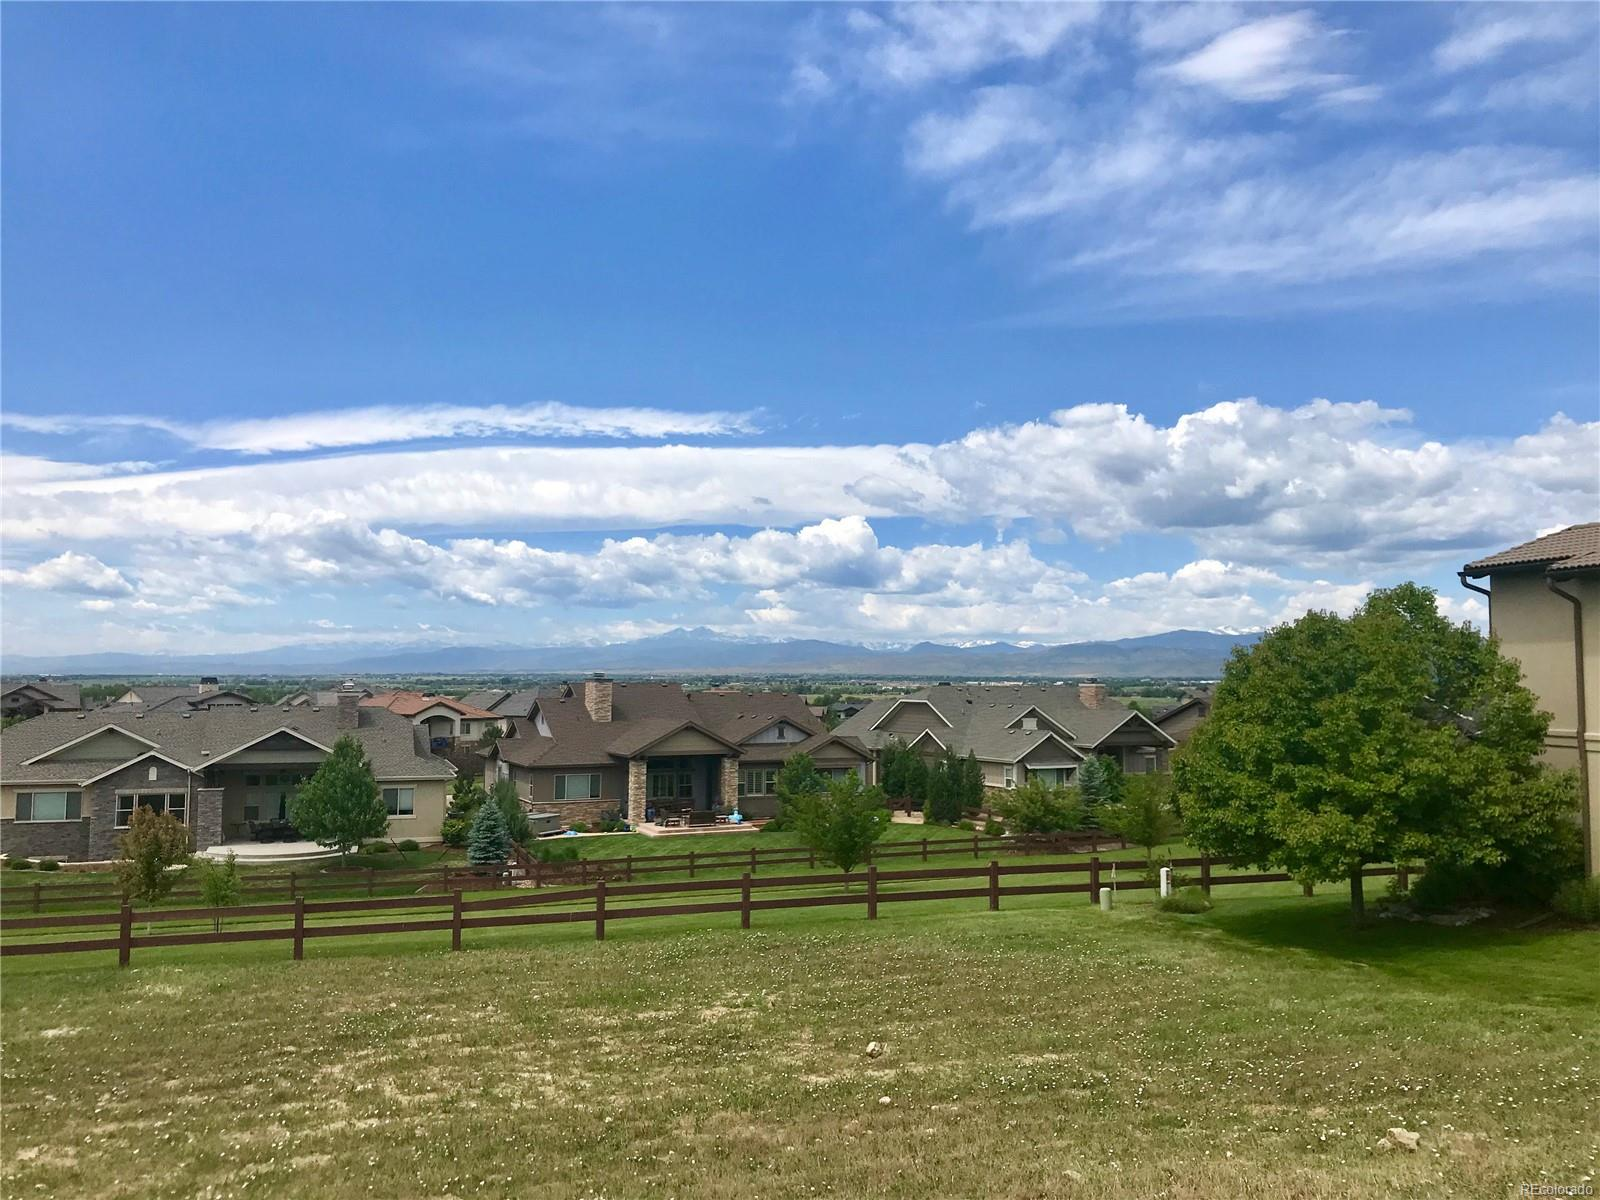 3889 Valley Crest Drive, Timnath, CO 80547 - Timnath, CO real estate listing